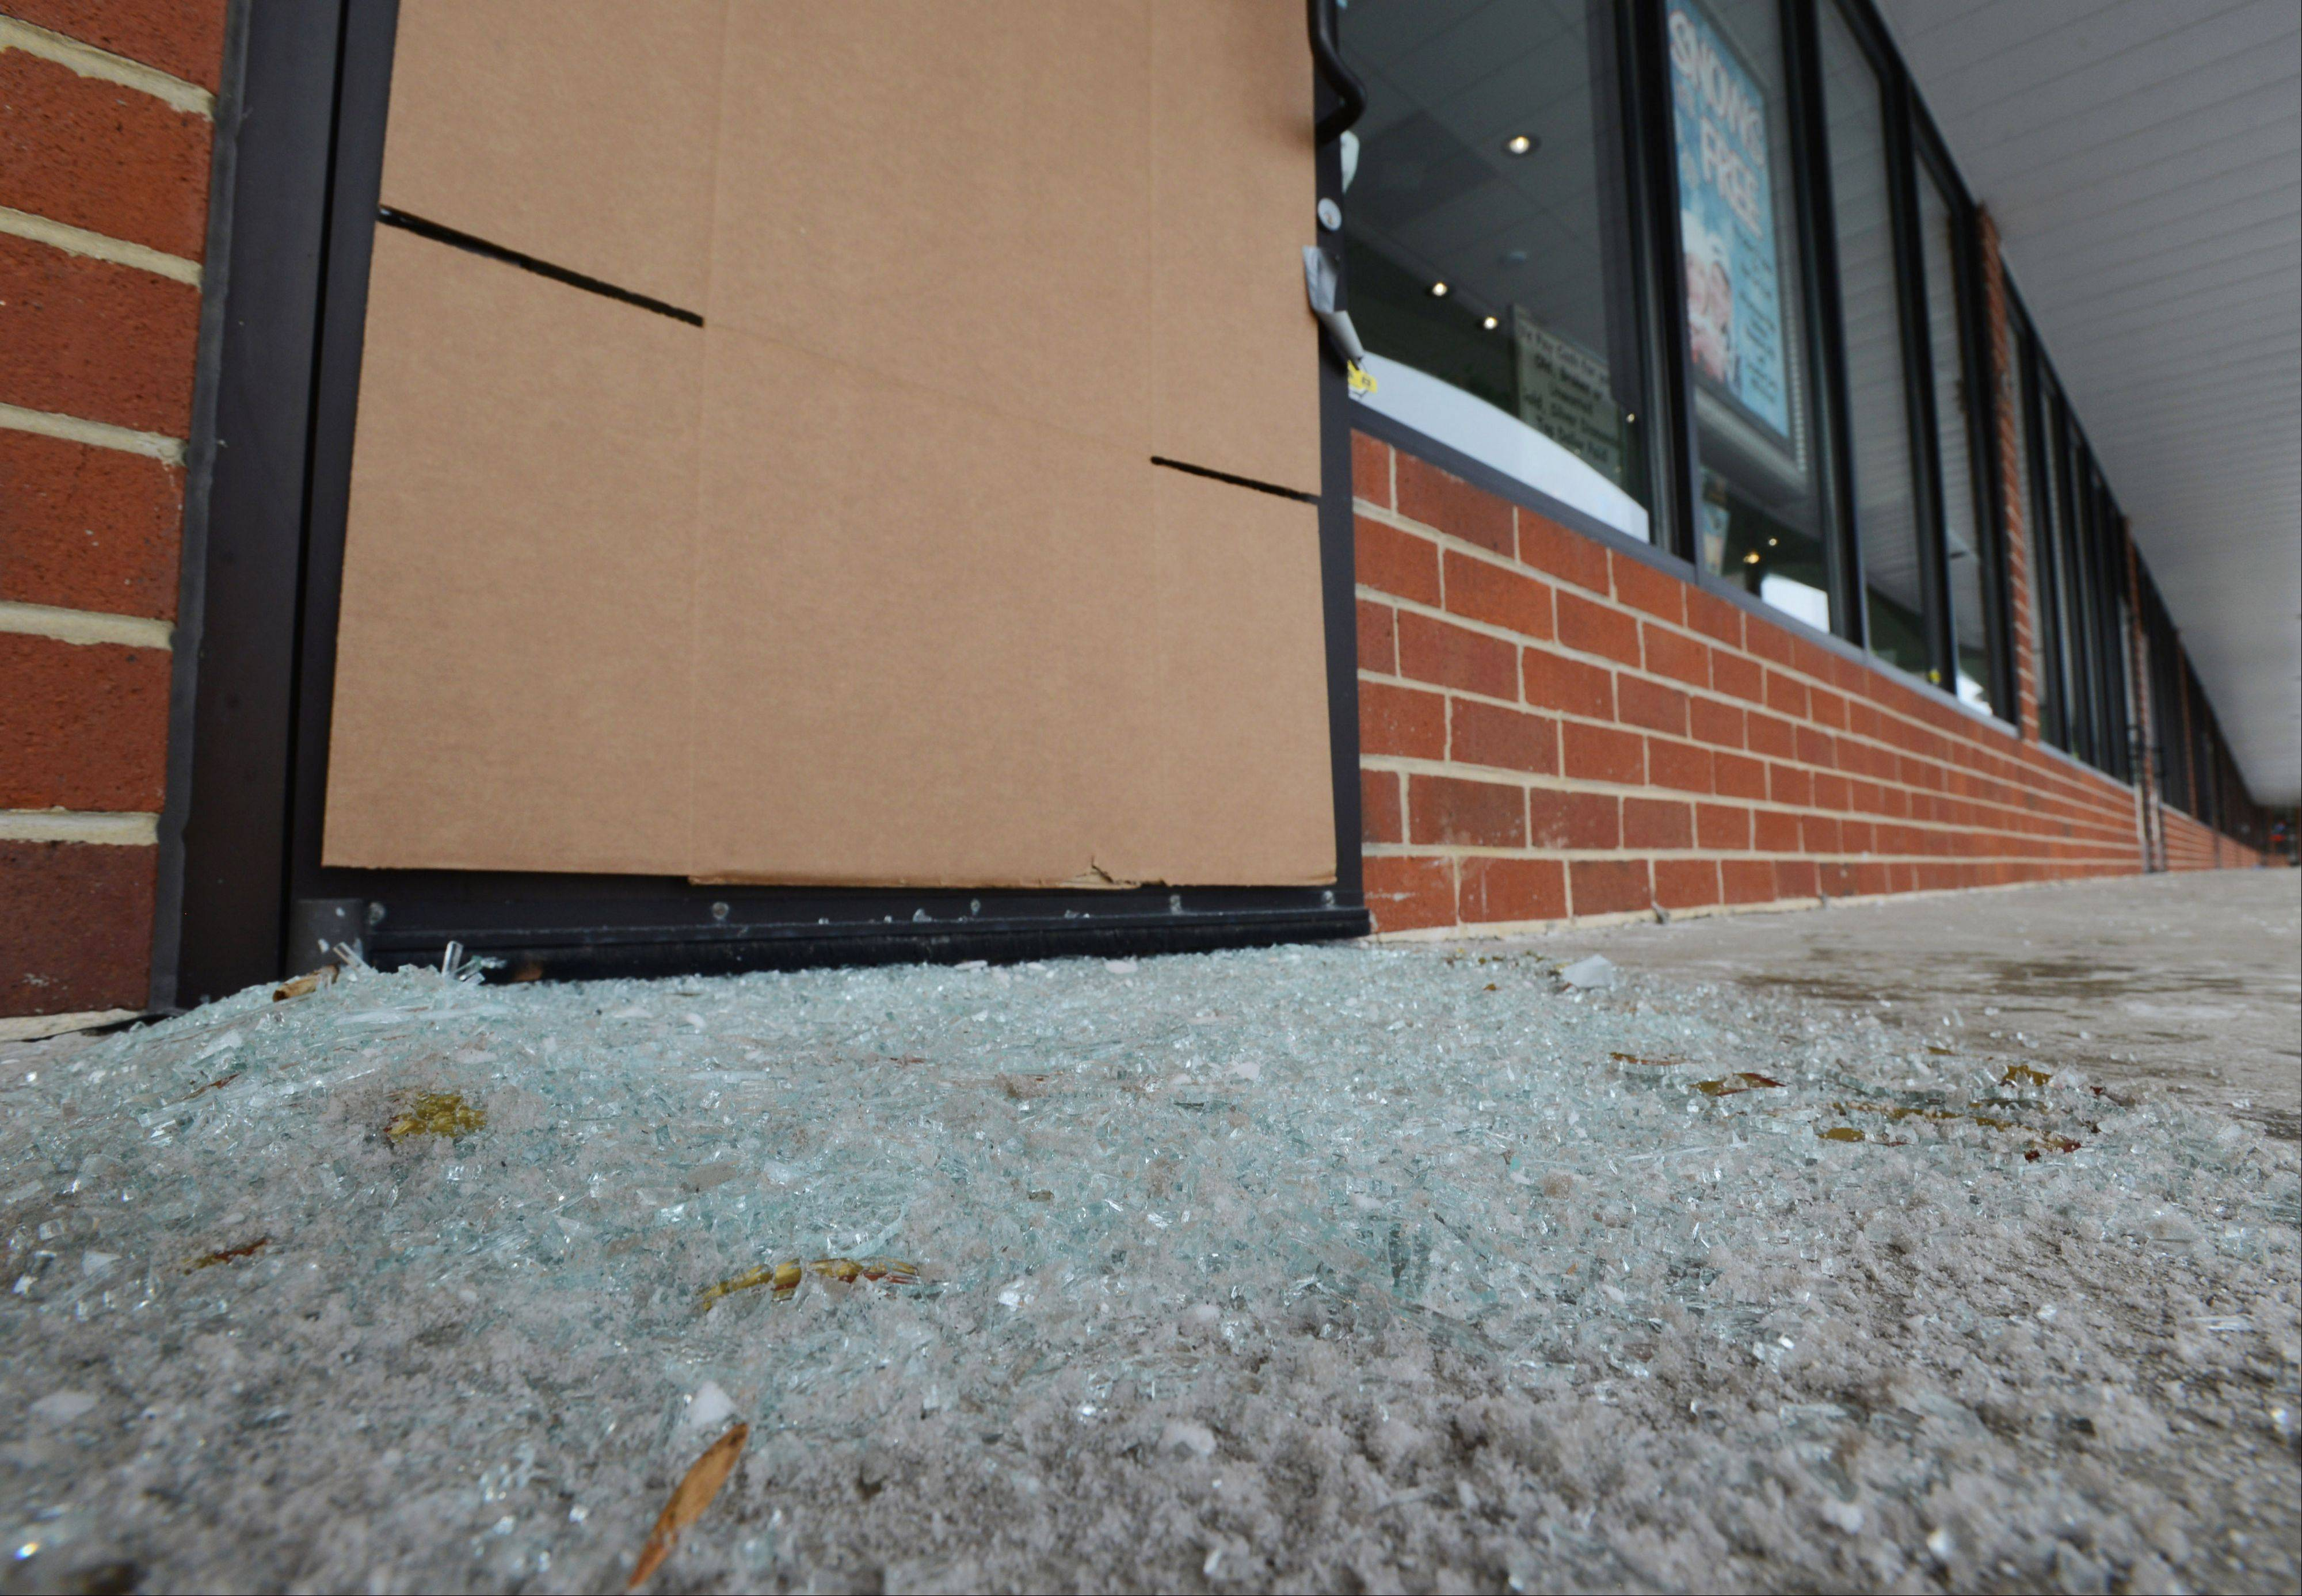 Burglars hit Mundelein jewelry store that offered Jan. 1 snow deal